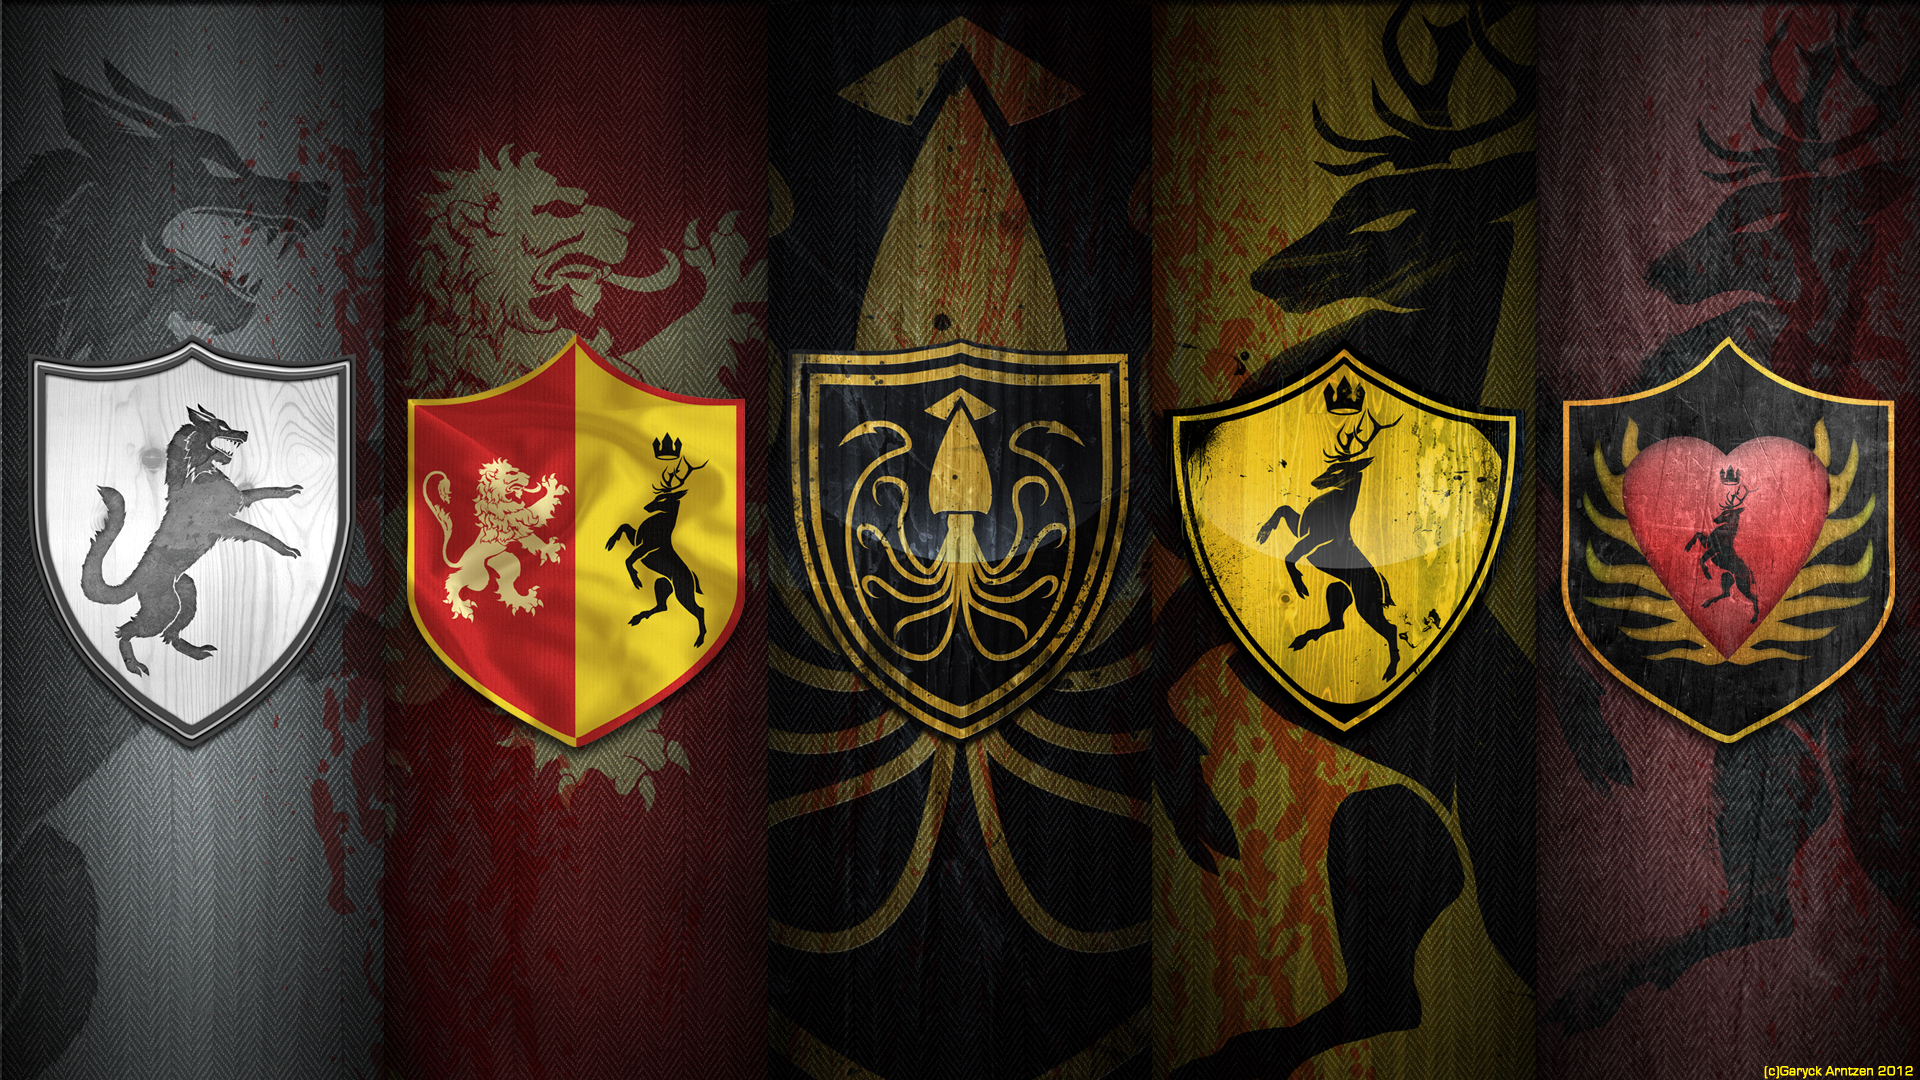 TOPIC A: - Westeros has been plunged into a bloody conflict after the events following King Robert Baratheon's death. Wolves fight lions and stags fight each other. Times of turmoil such as this cry out for a strong ruler. Proclaimed Kings are reaching for their sworn bannermen, with the sole purpose of sitting on the Iron Throne. With the devastation that is being rained upon the Seven Kingdoms, Lords and Ladies upon the vast Westeros continent have gathered; hence they are to address this problematic in a diplomatic manner for the sake of the Seven Kingdoms. Such a reunion begs the questions: Who is the rightful King? Who would be the best ruler? How will justice be served for all Houses?